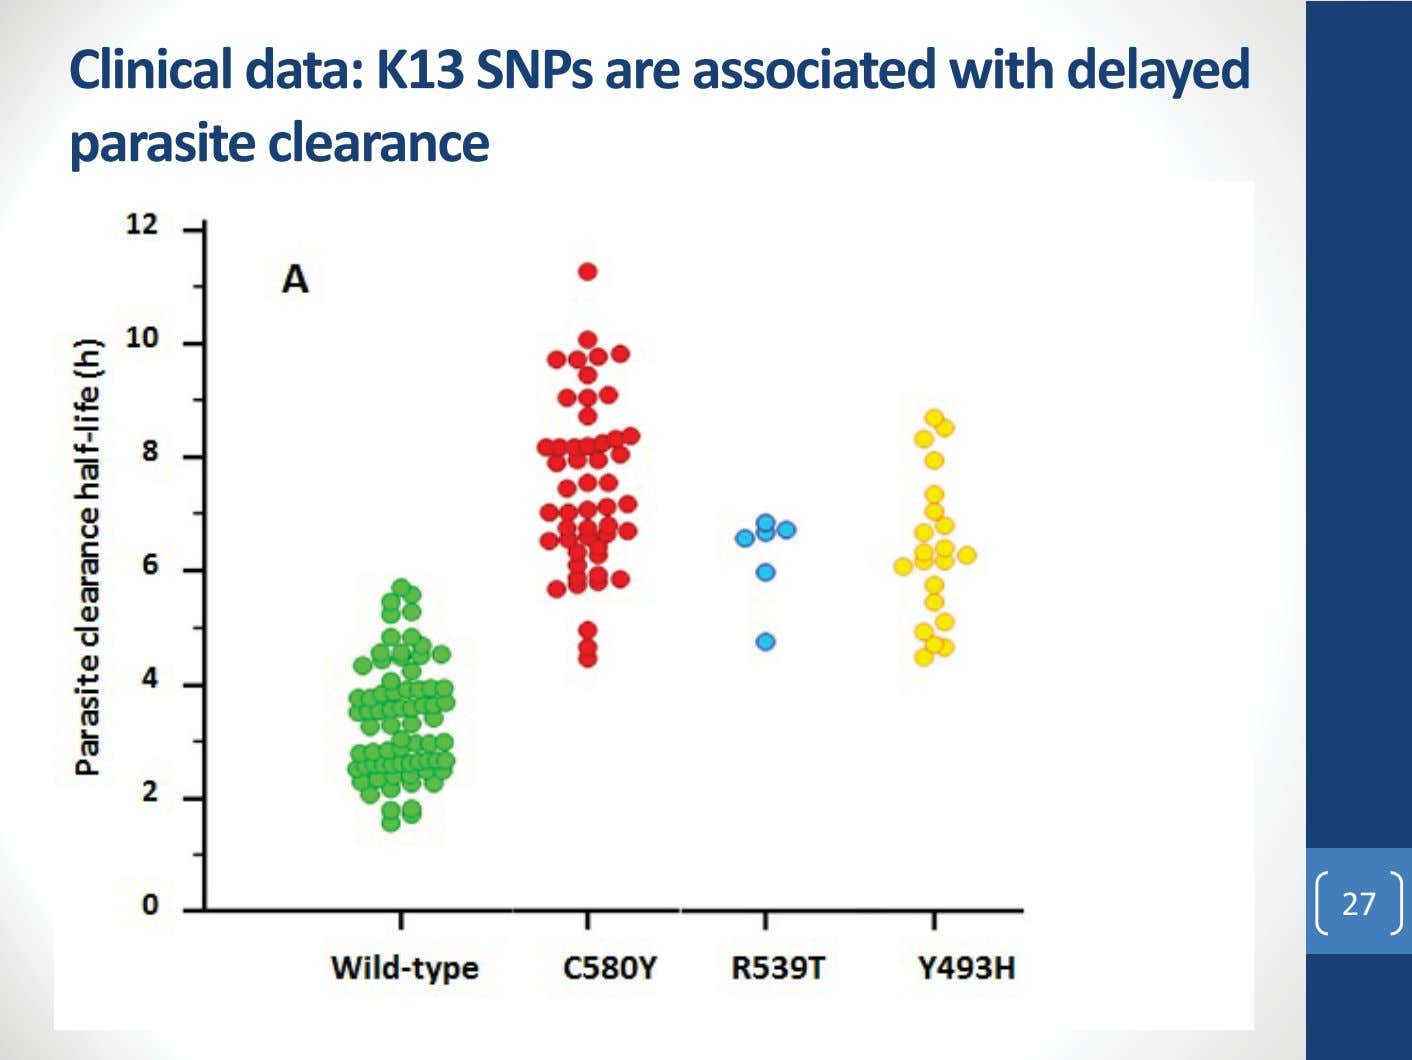 Clinical data: K13 SNPs are associated with delayed parasite clearance 27